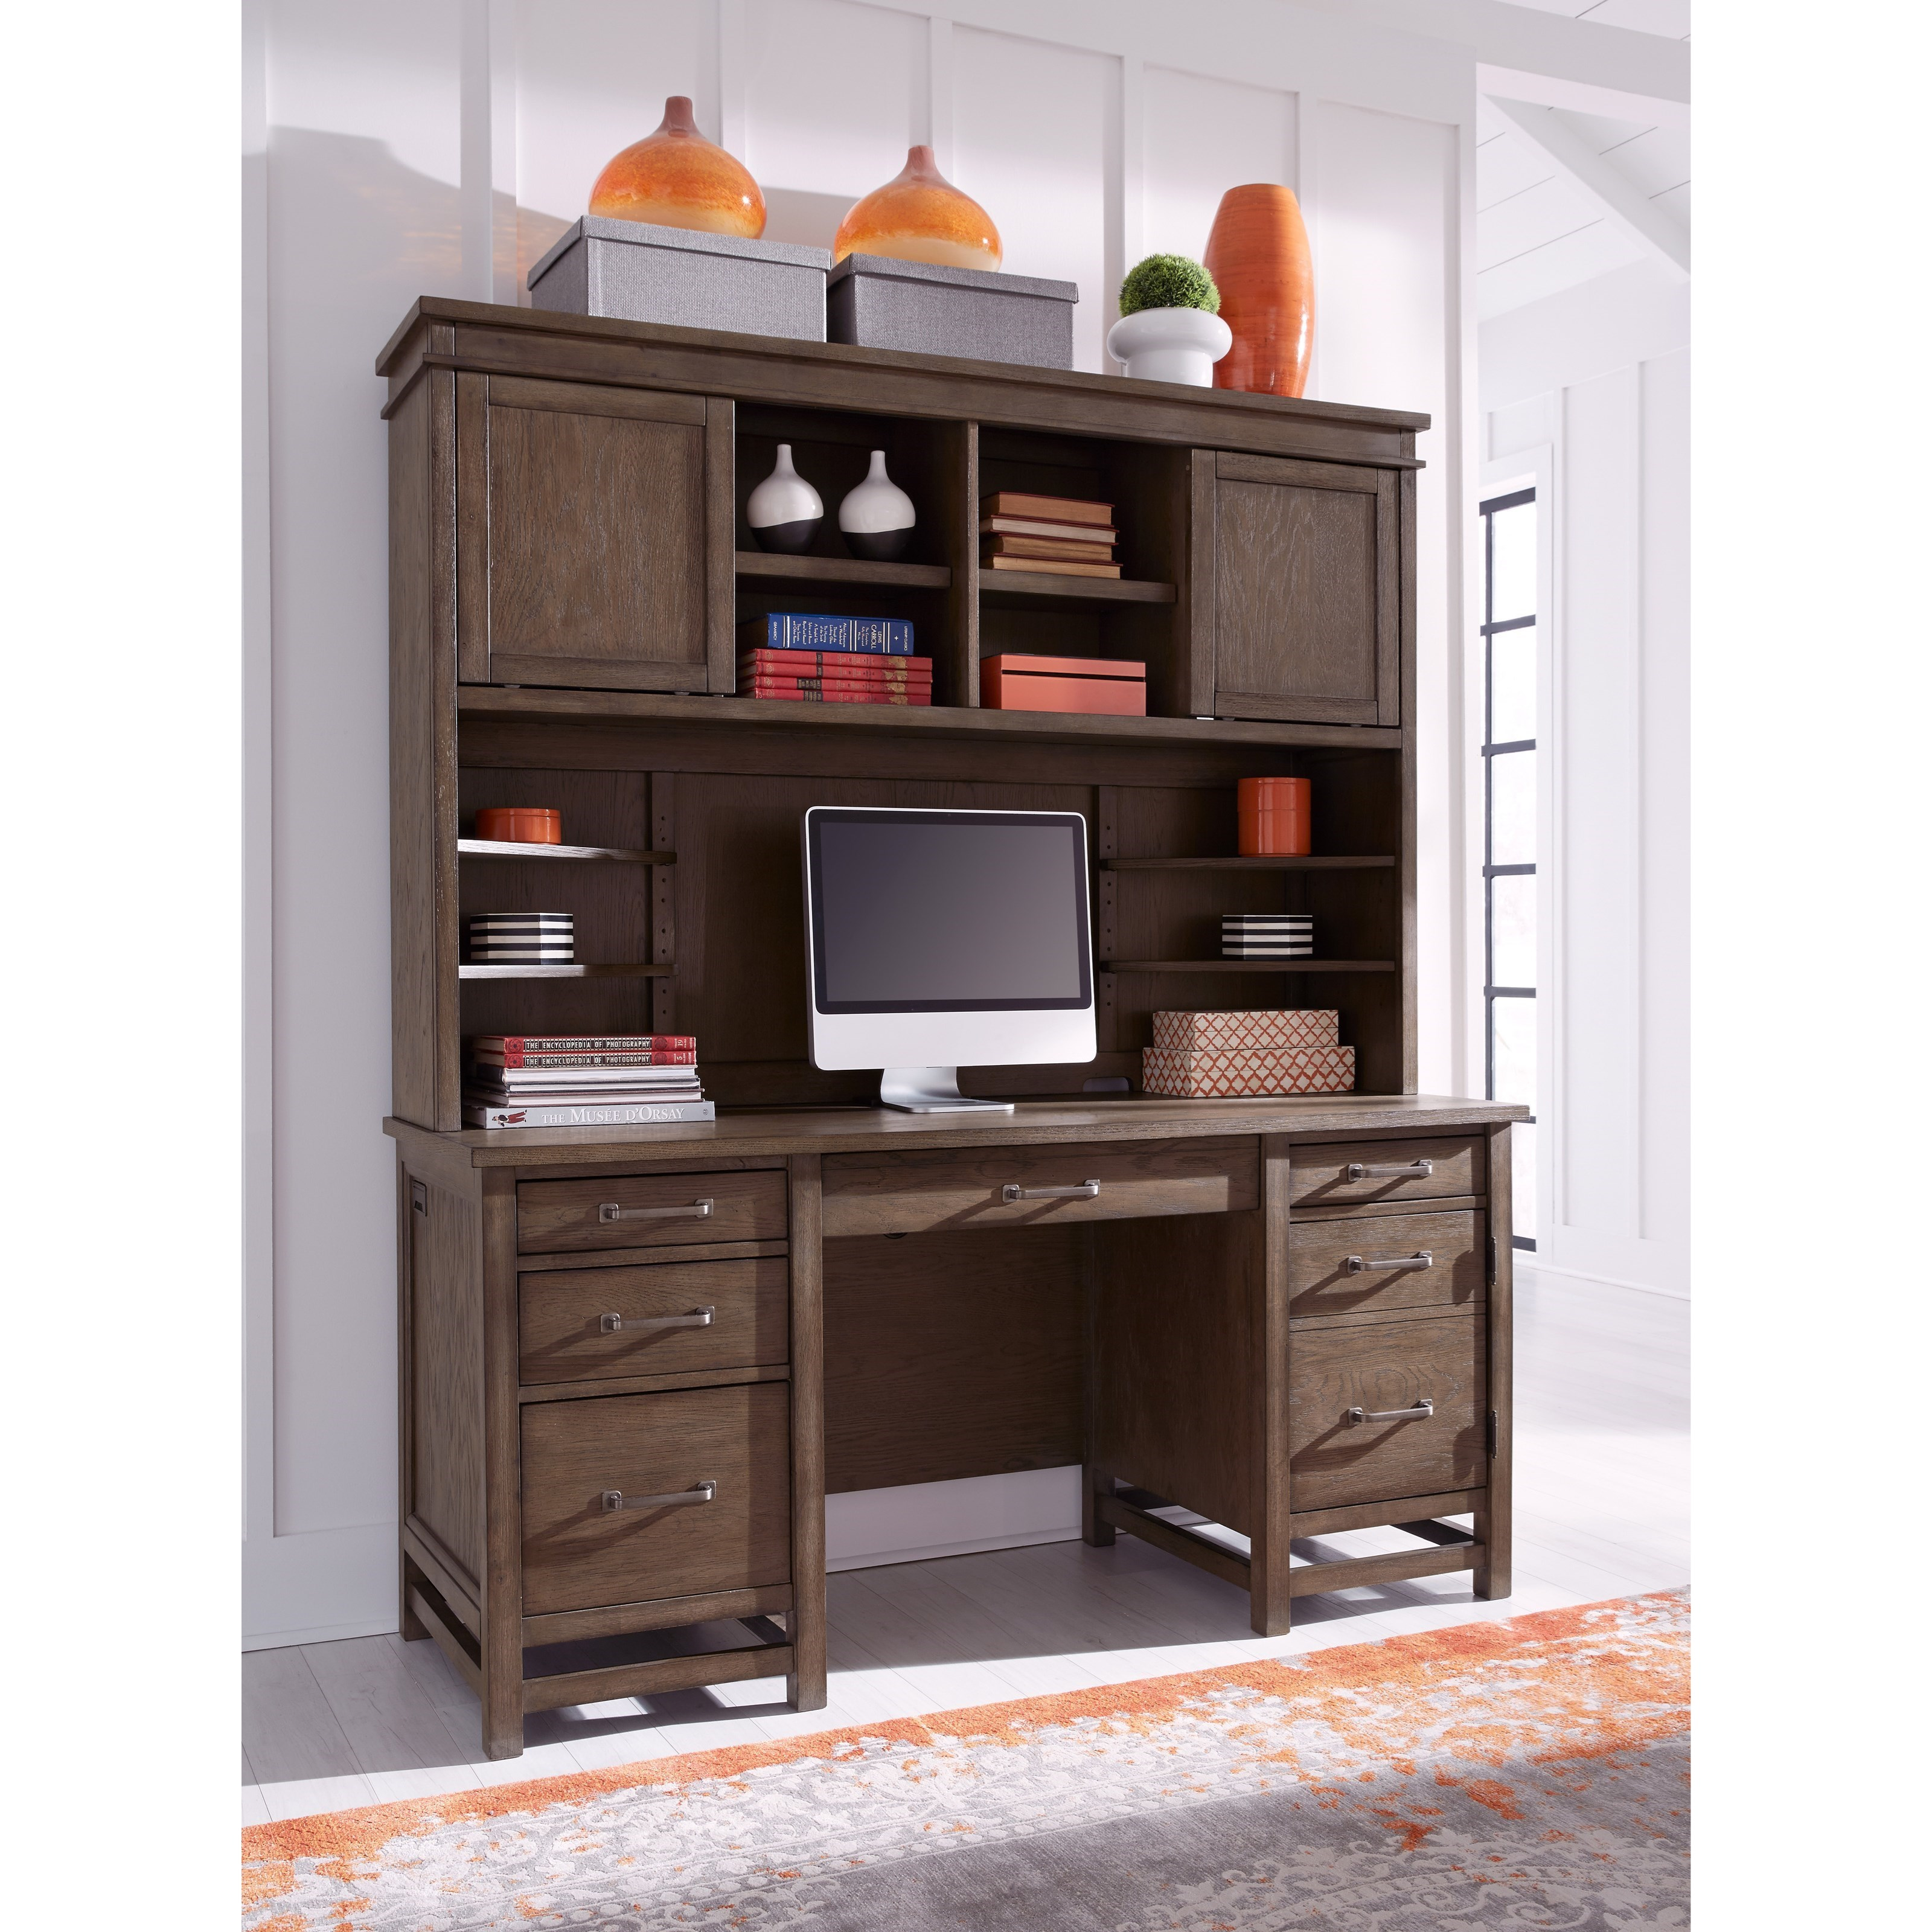 Terrace Point Desk and Hutch by Aspenhome at Baer's Furniture